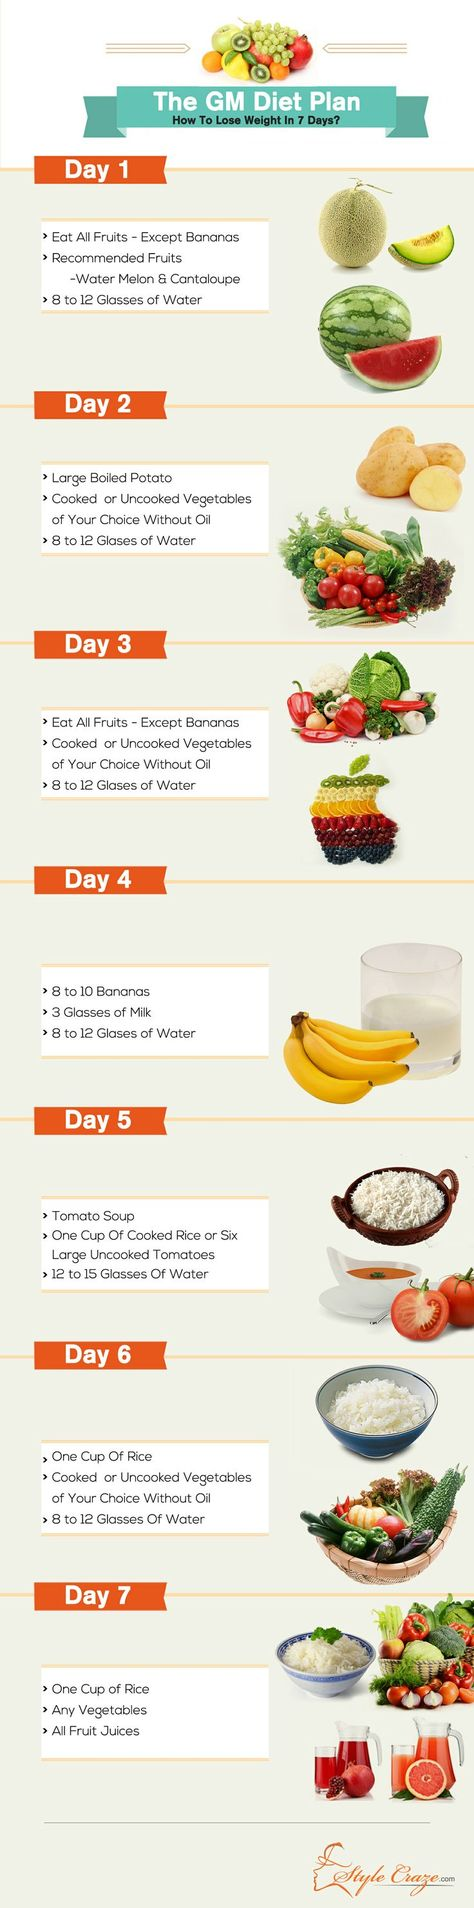 Fat loss diet chart for male image 2